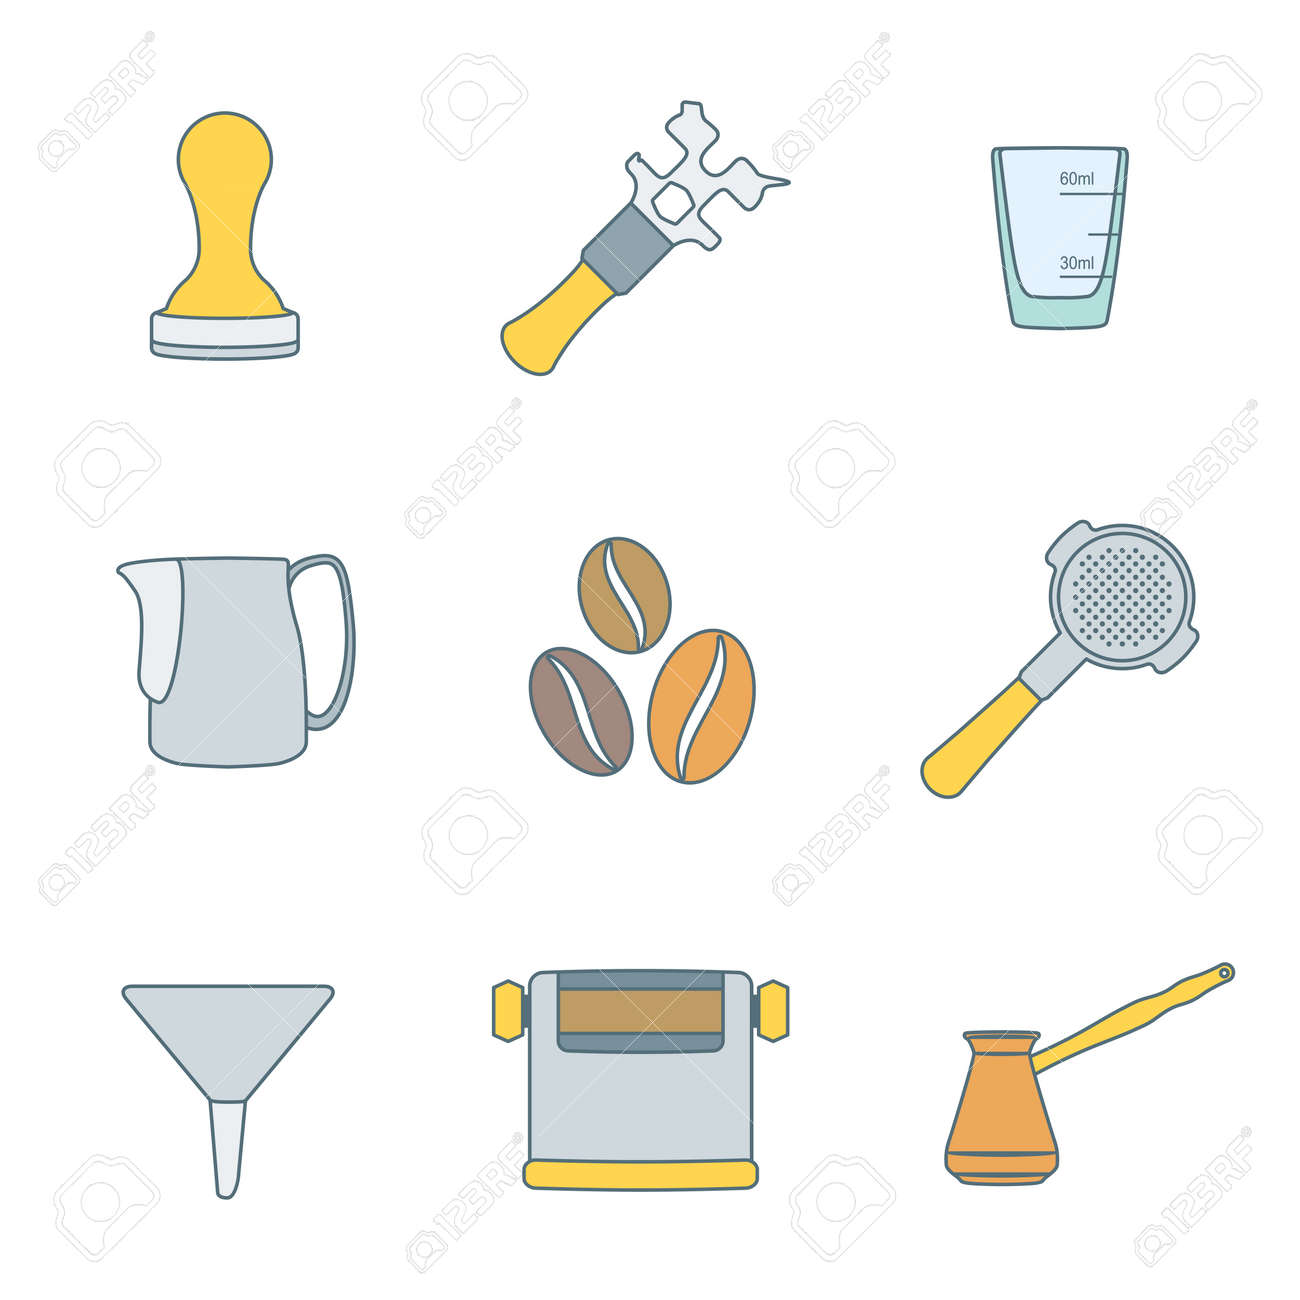 http://previews.123rf.com/images/al4k/al4k1412/al4k141200073/34919183-vector-colored-outline-coffee-barista-equipment-icons-set-tools-espresso-tamper-coffee-wrench-measur-Stock-Vector.jpg